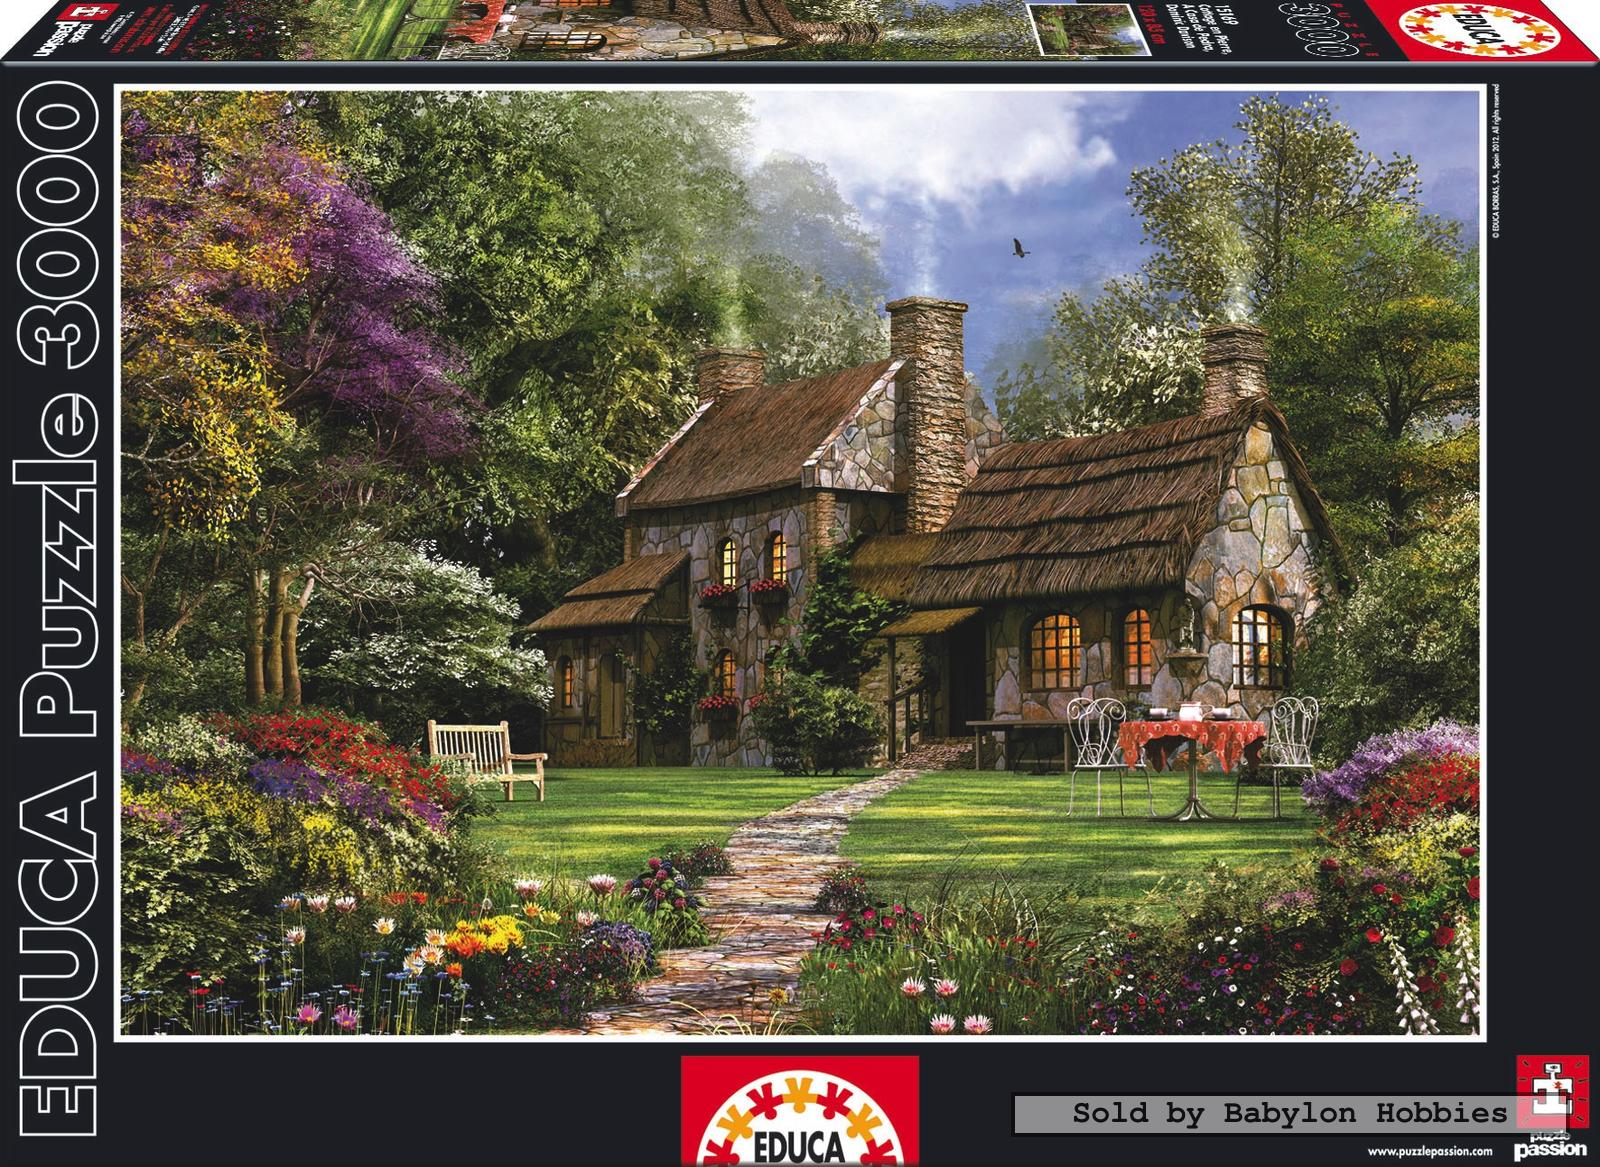 3000 pcs jigsaw puzzle genuine flint cottage d davison art educa 15169 ebay. Black Bedroom Furniture Sets. Home Design Ideas